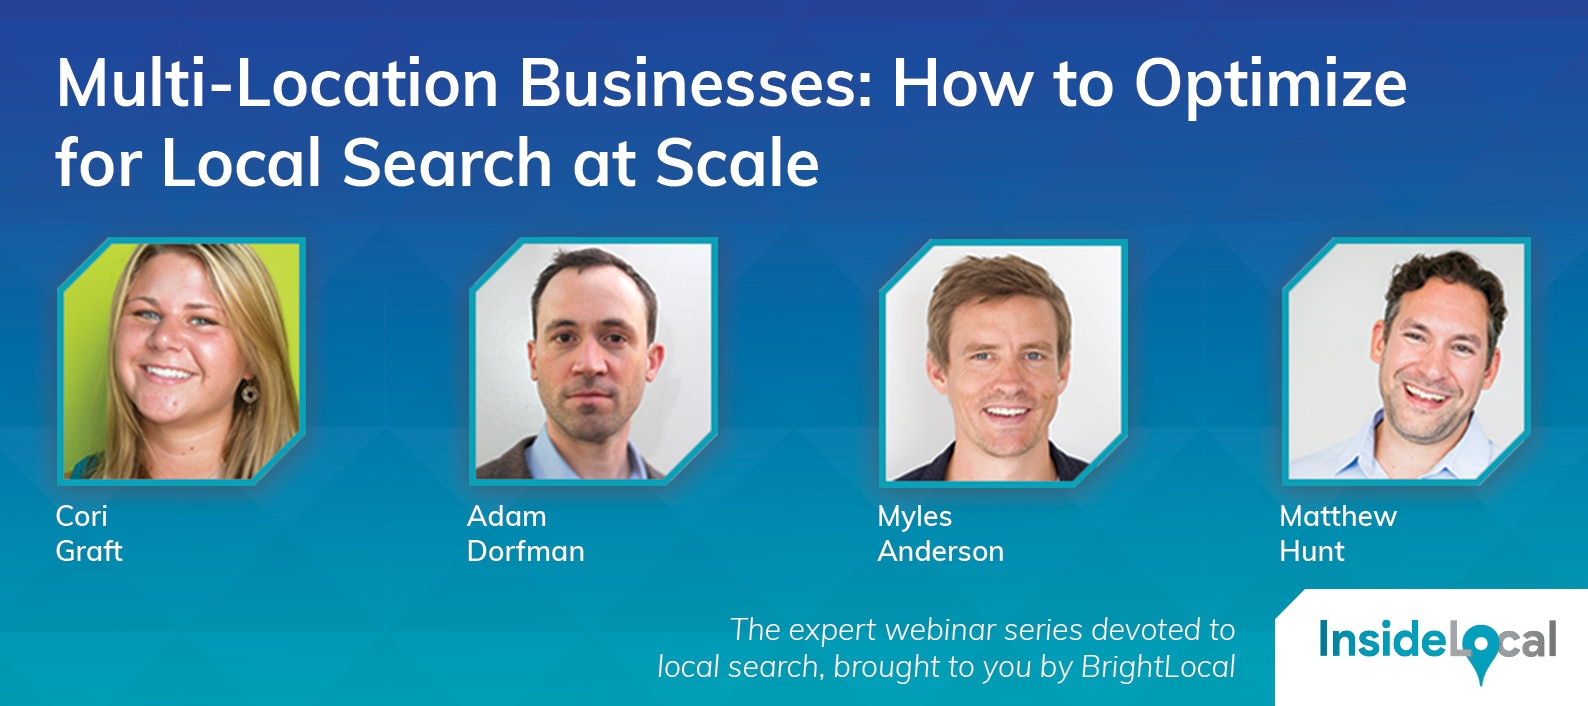 Multi-Location Businesses: How to Optimize for Local Search at Scale